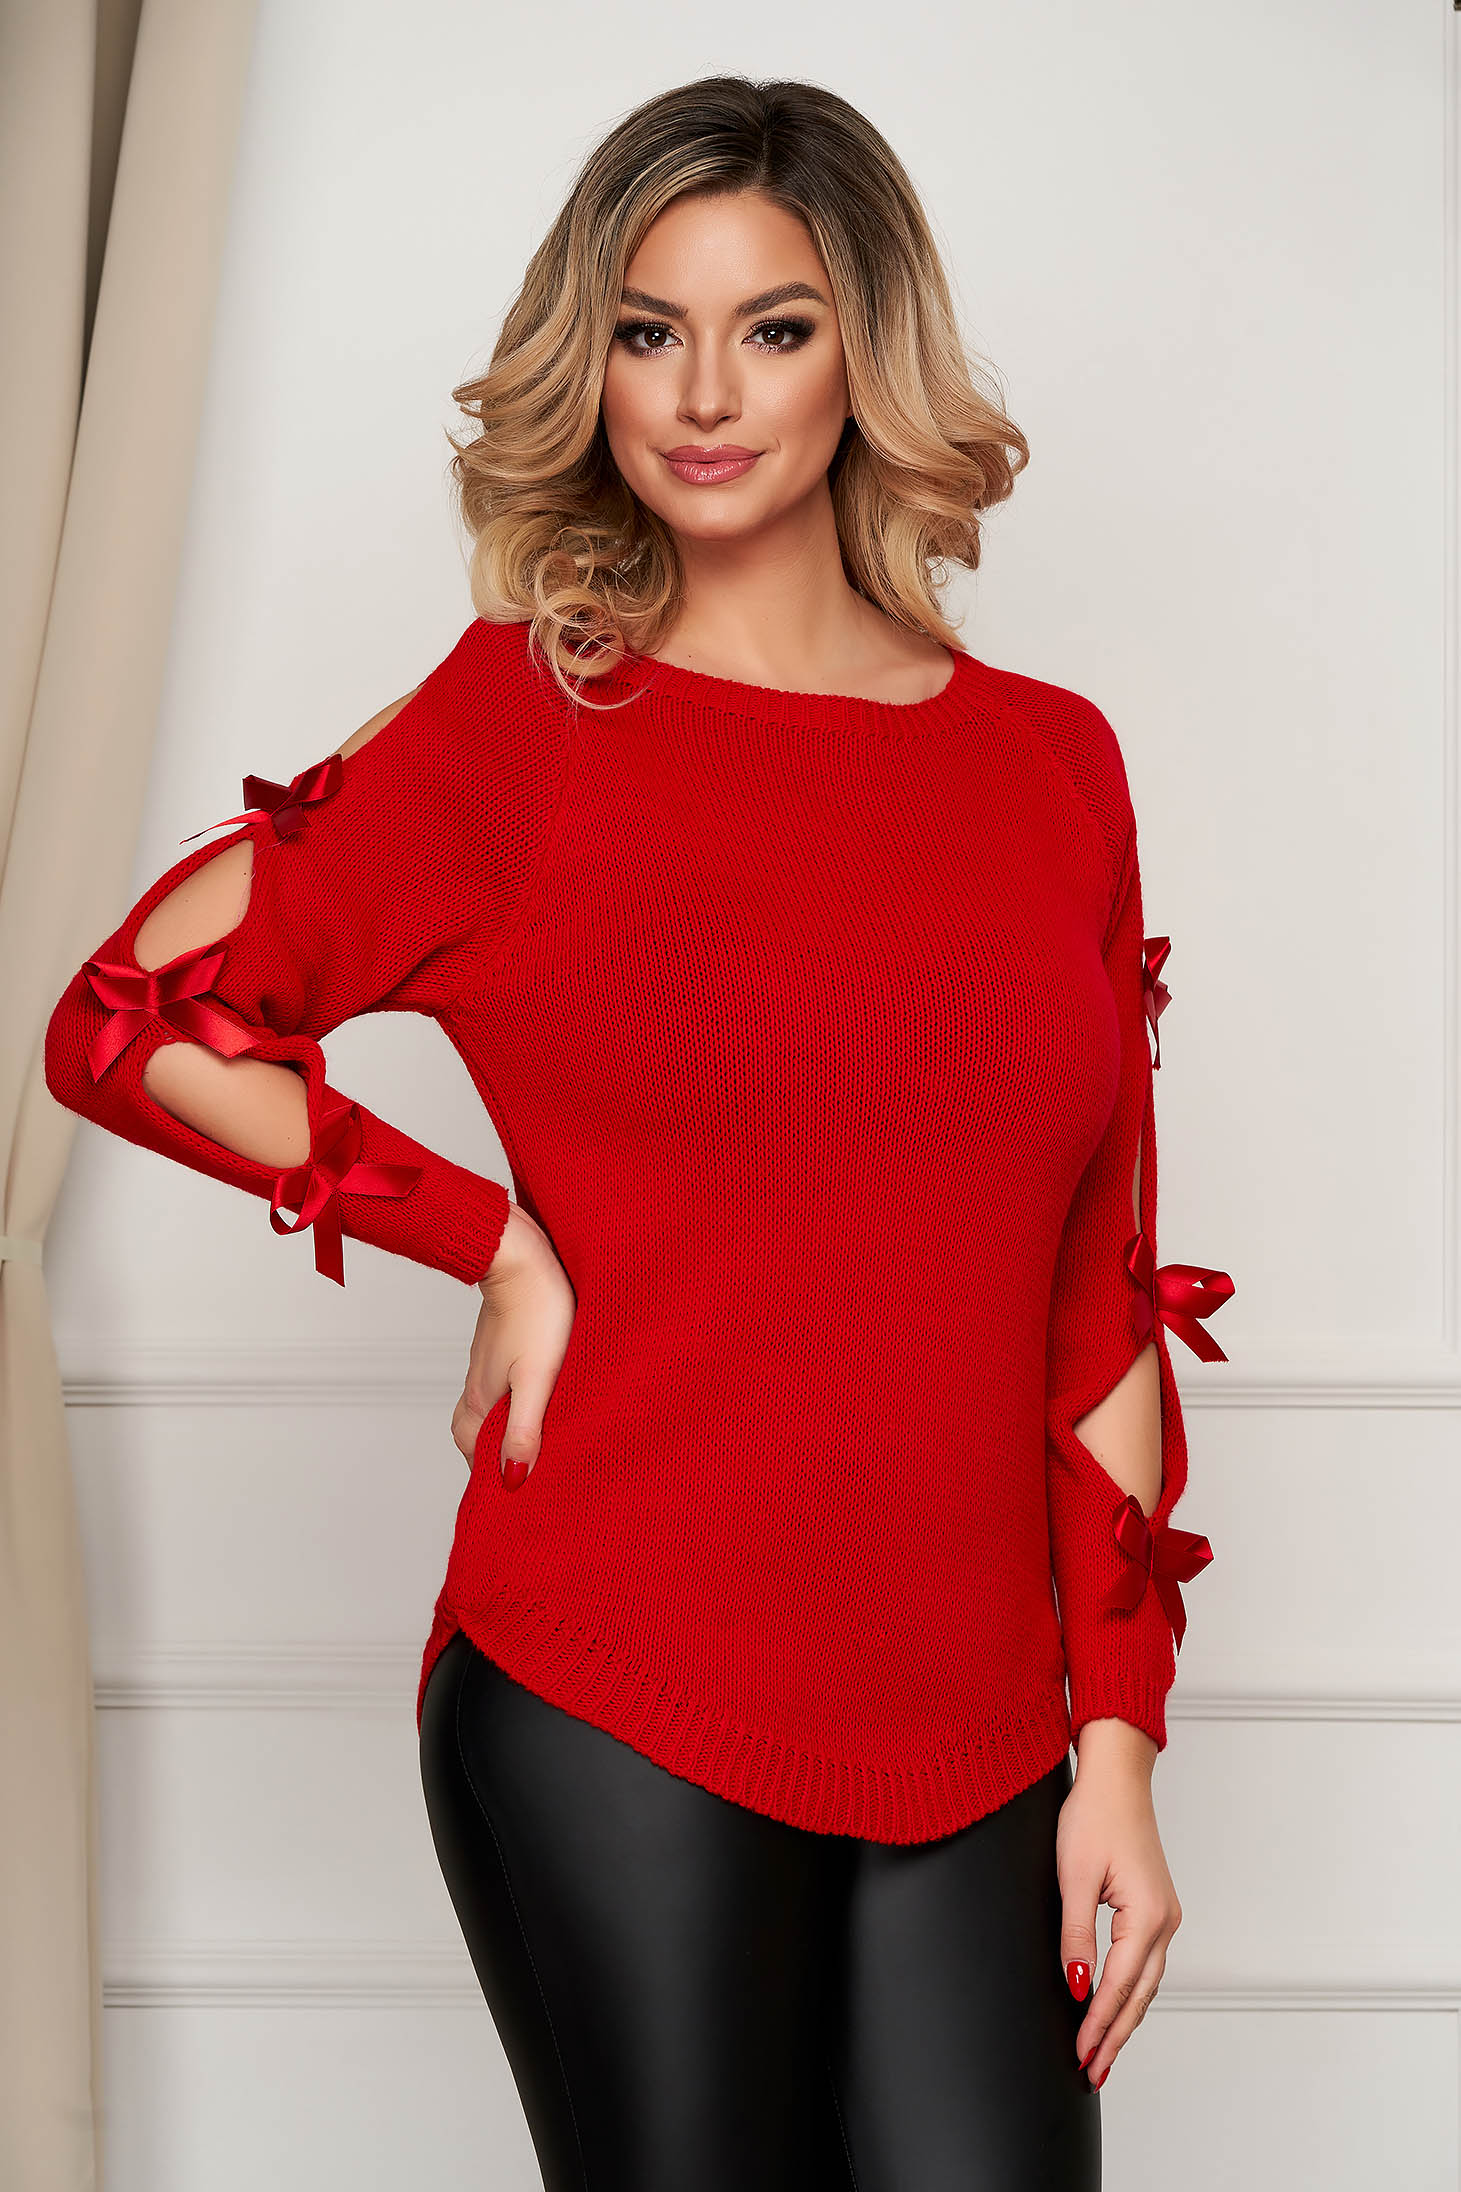 Red sweater knitted with bow accessories casual loose fit